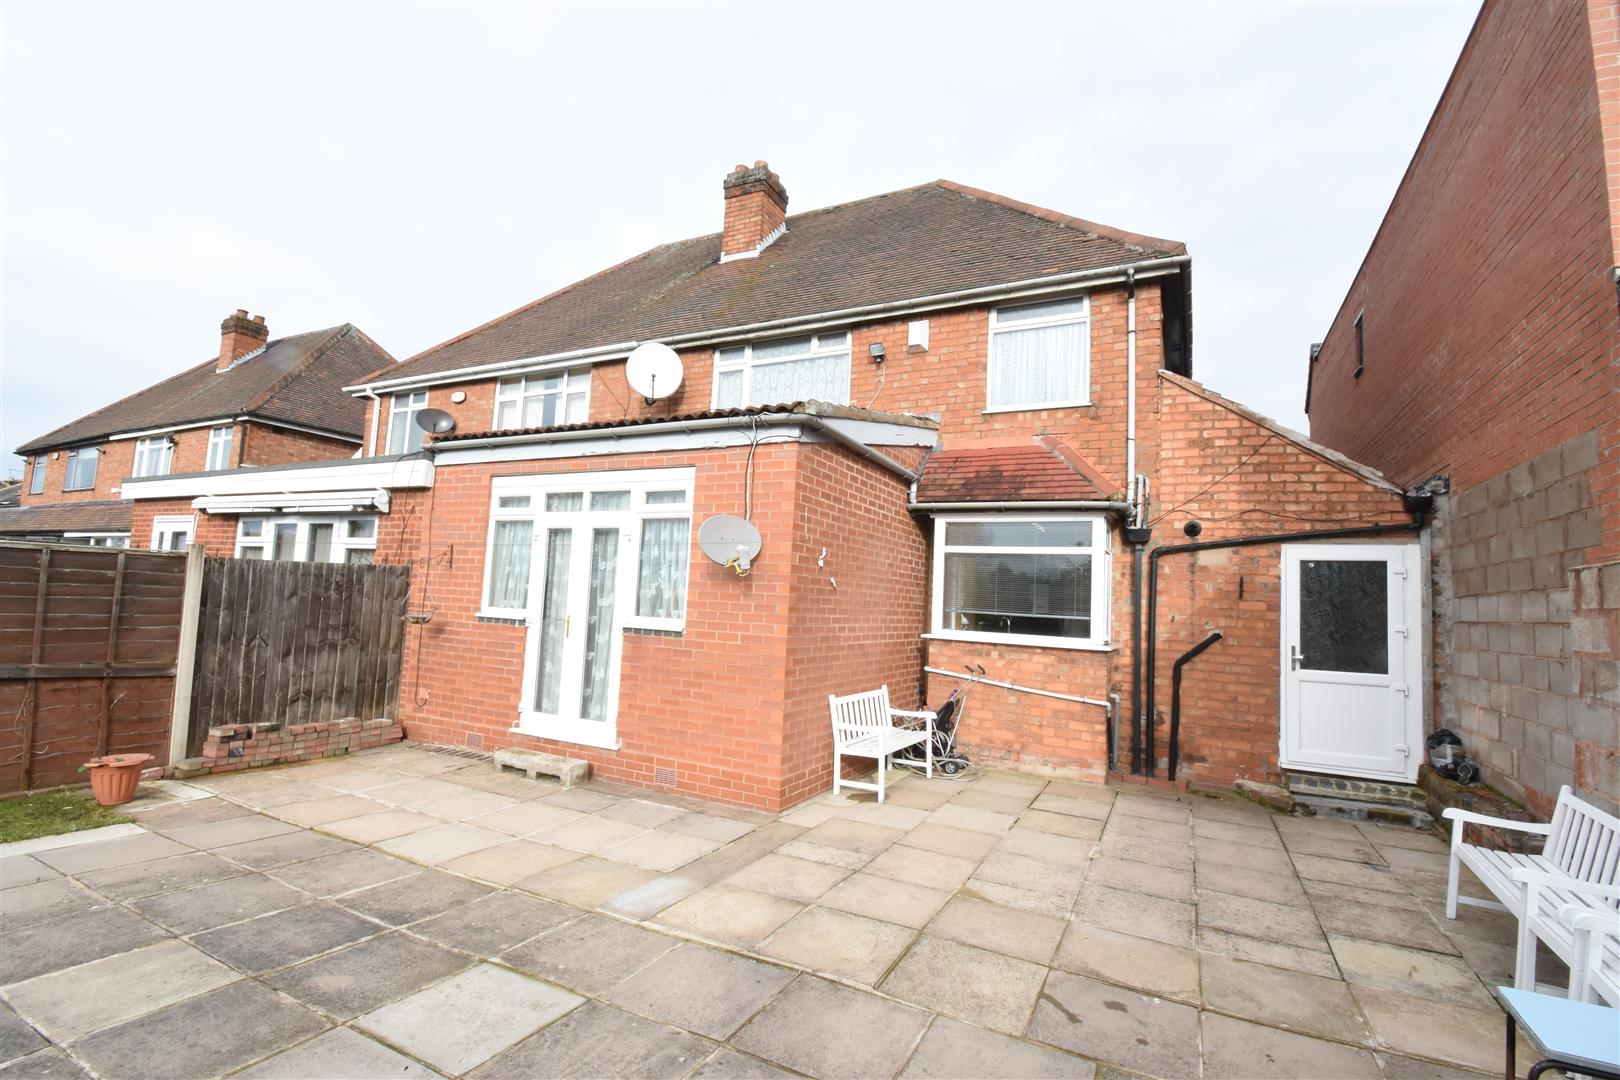 3 bed house for sale in Bromford Road, Birmingham 12